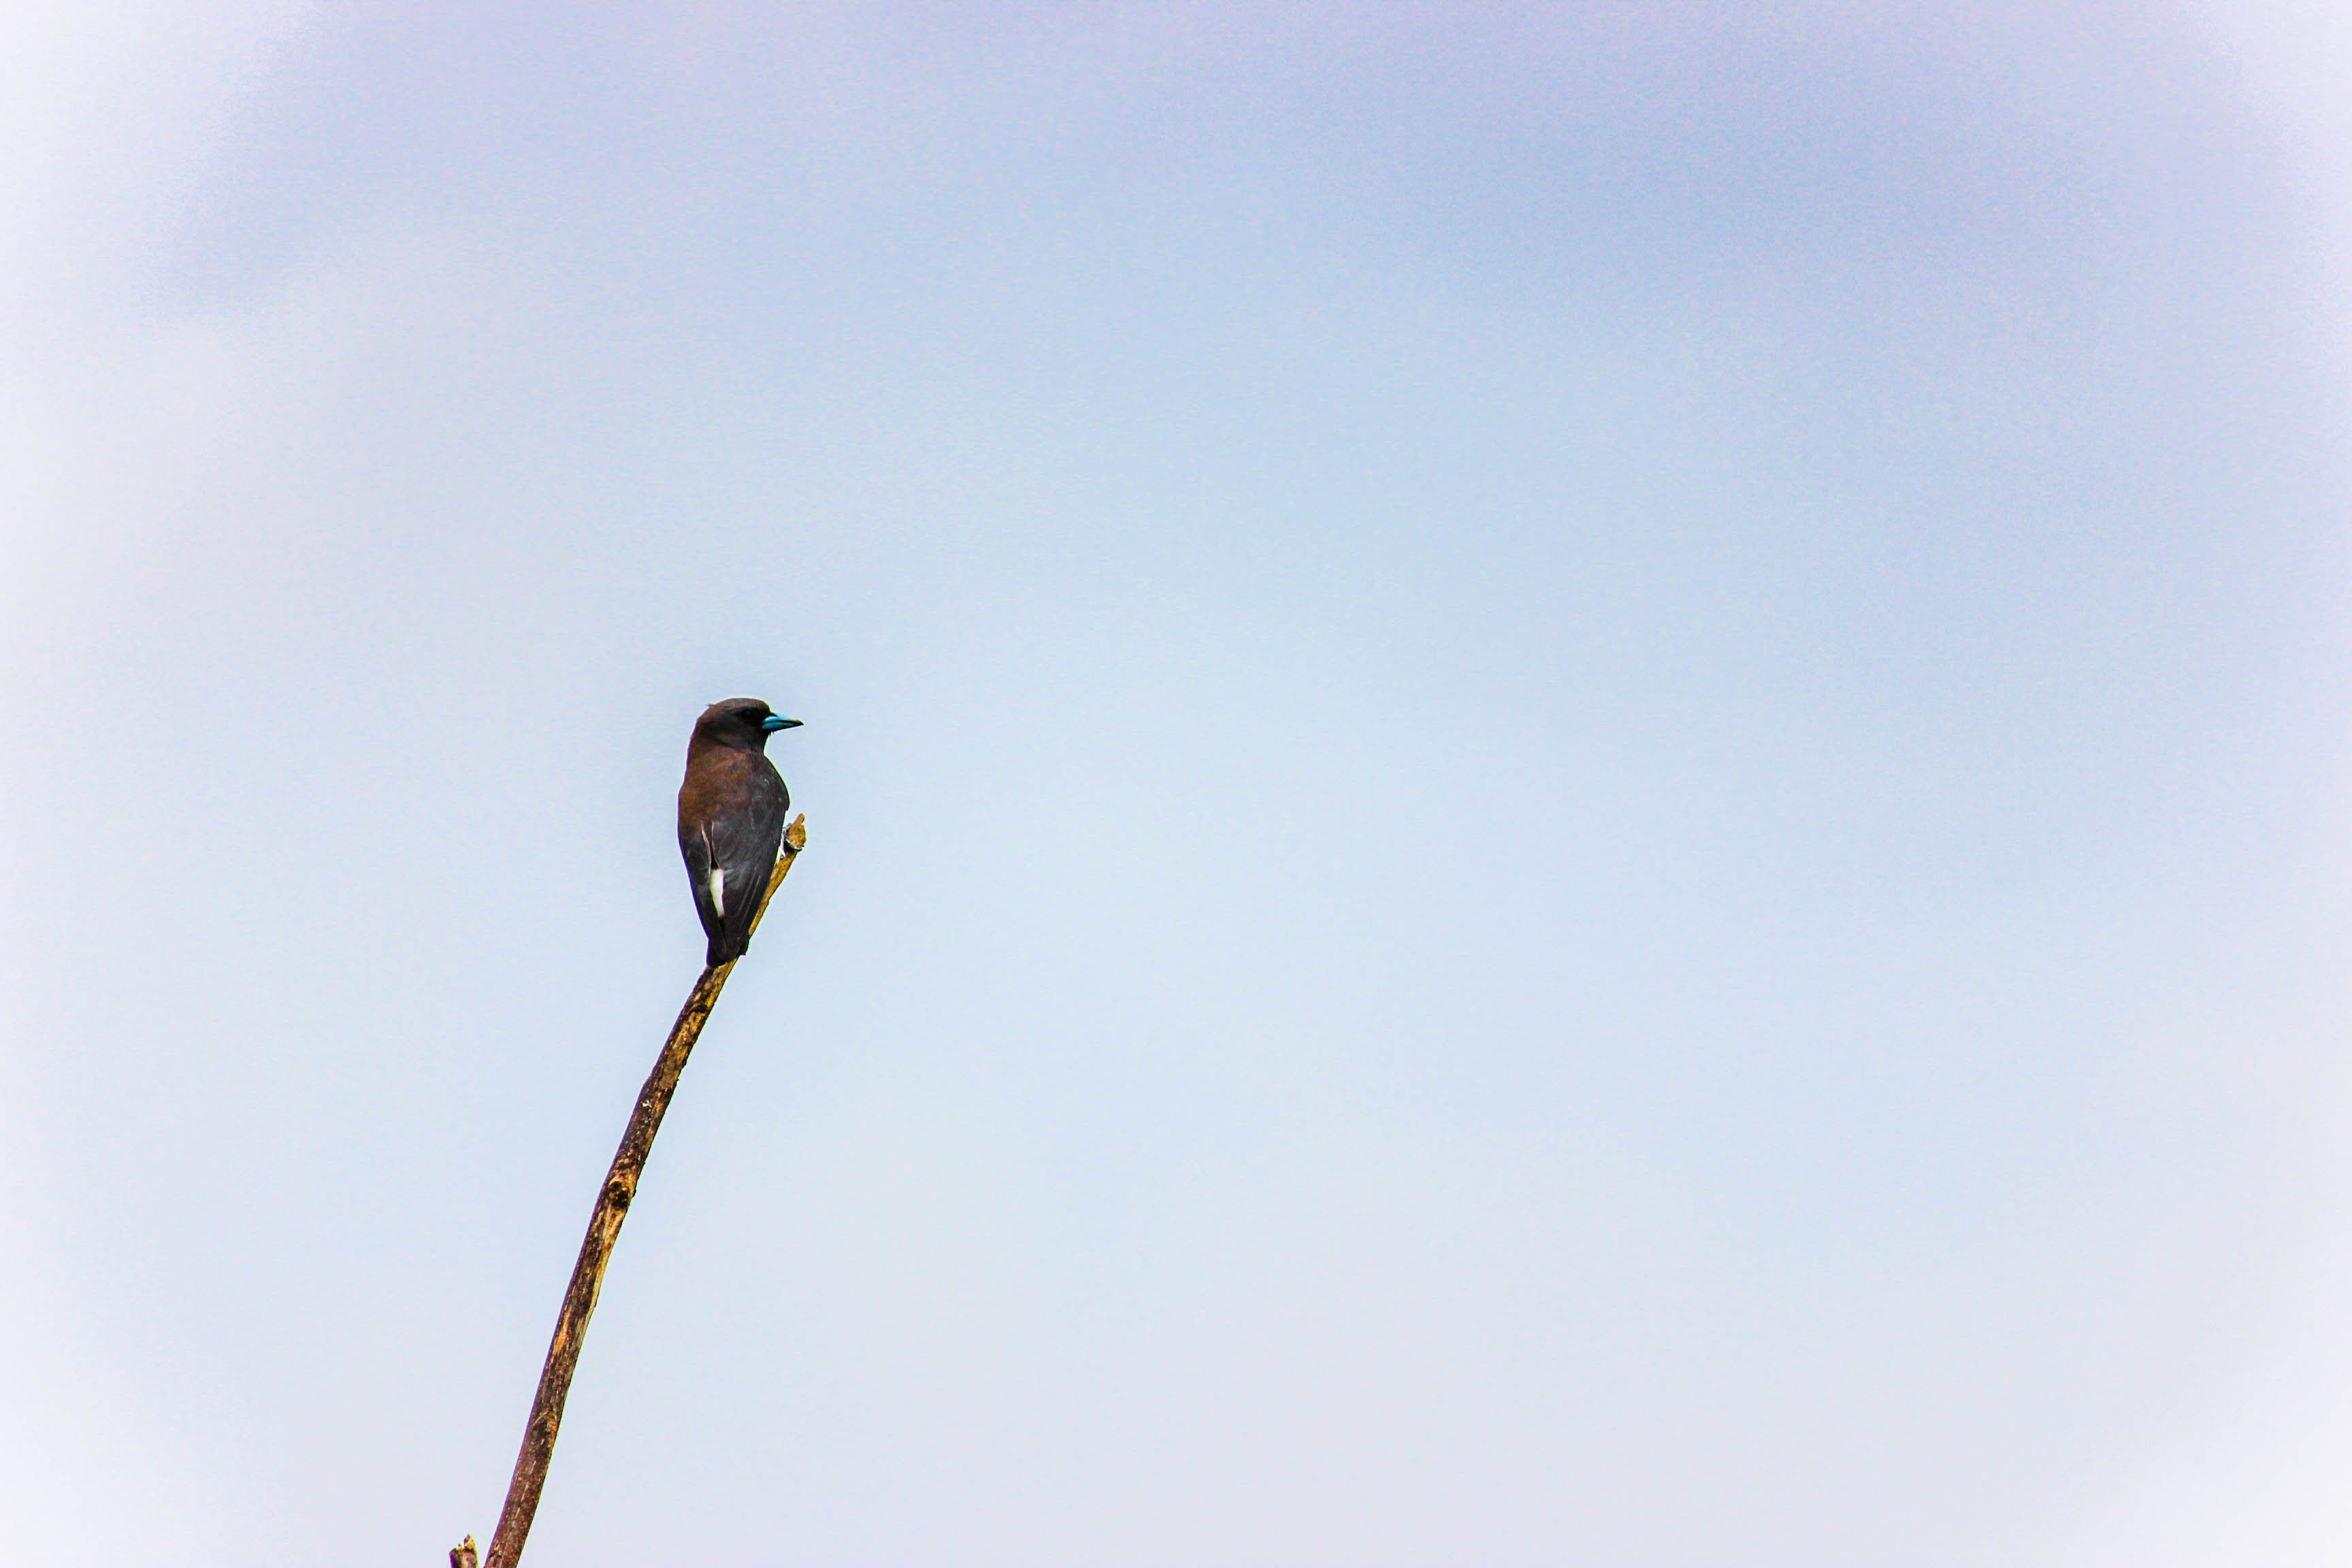 Free stock photo of bird, nature, tree branch